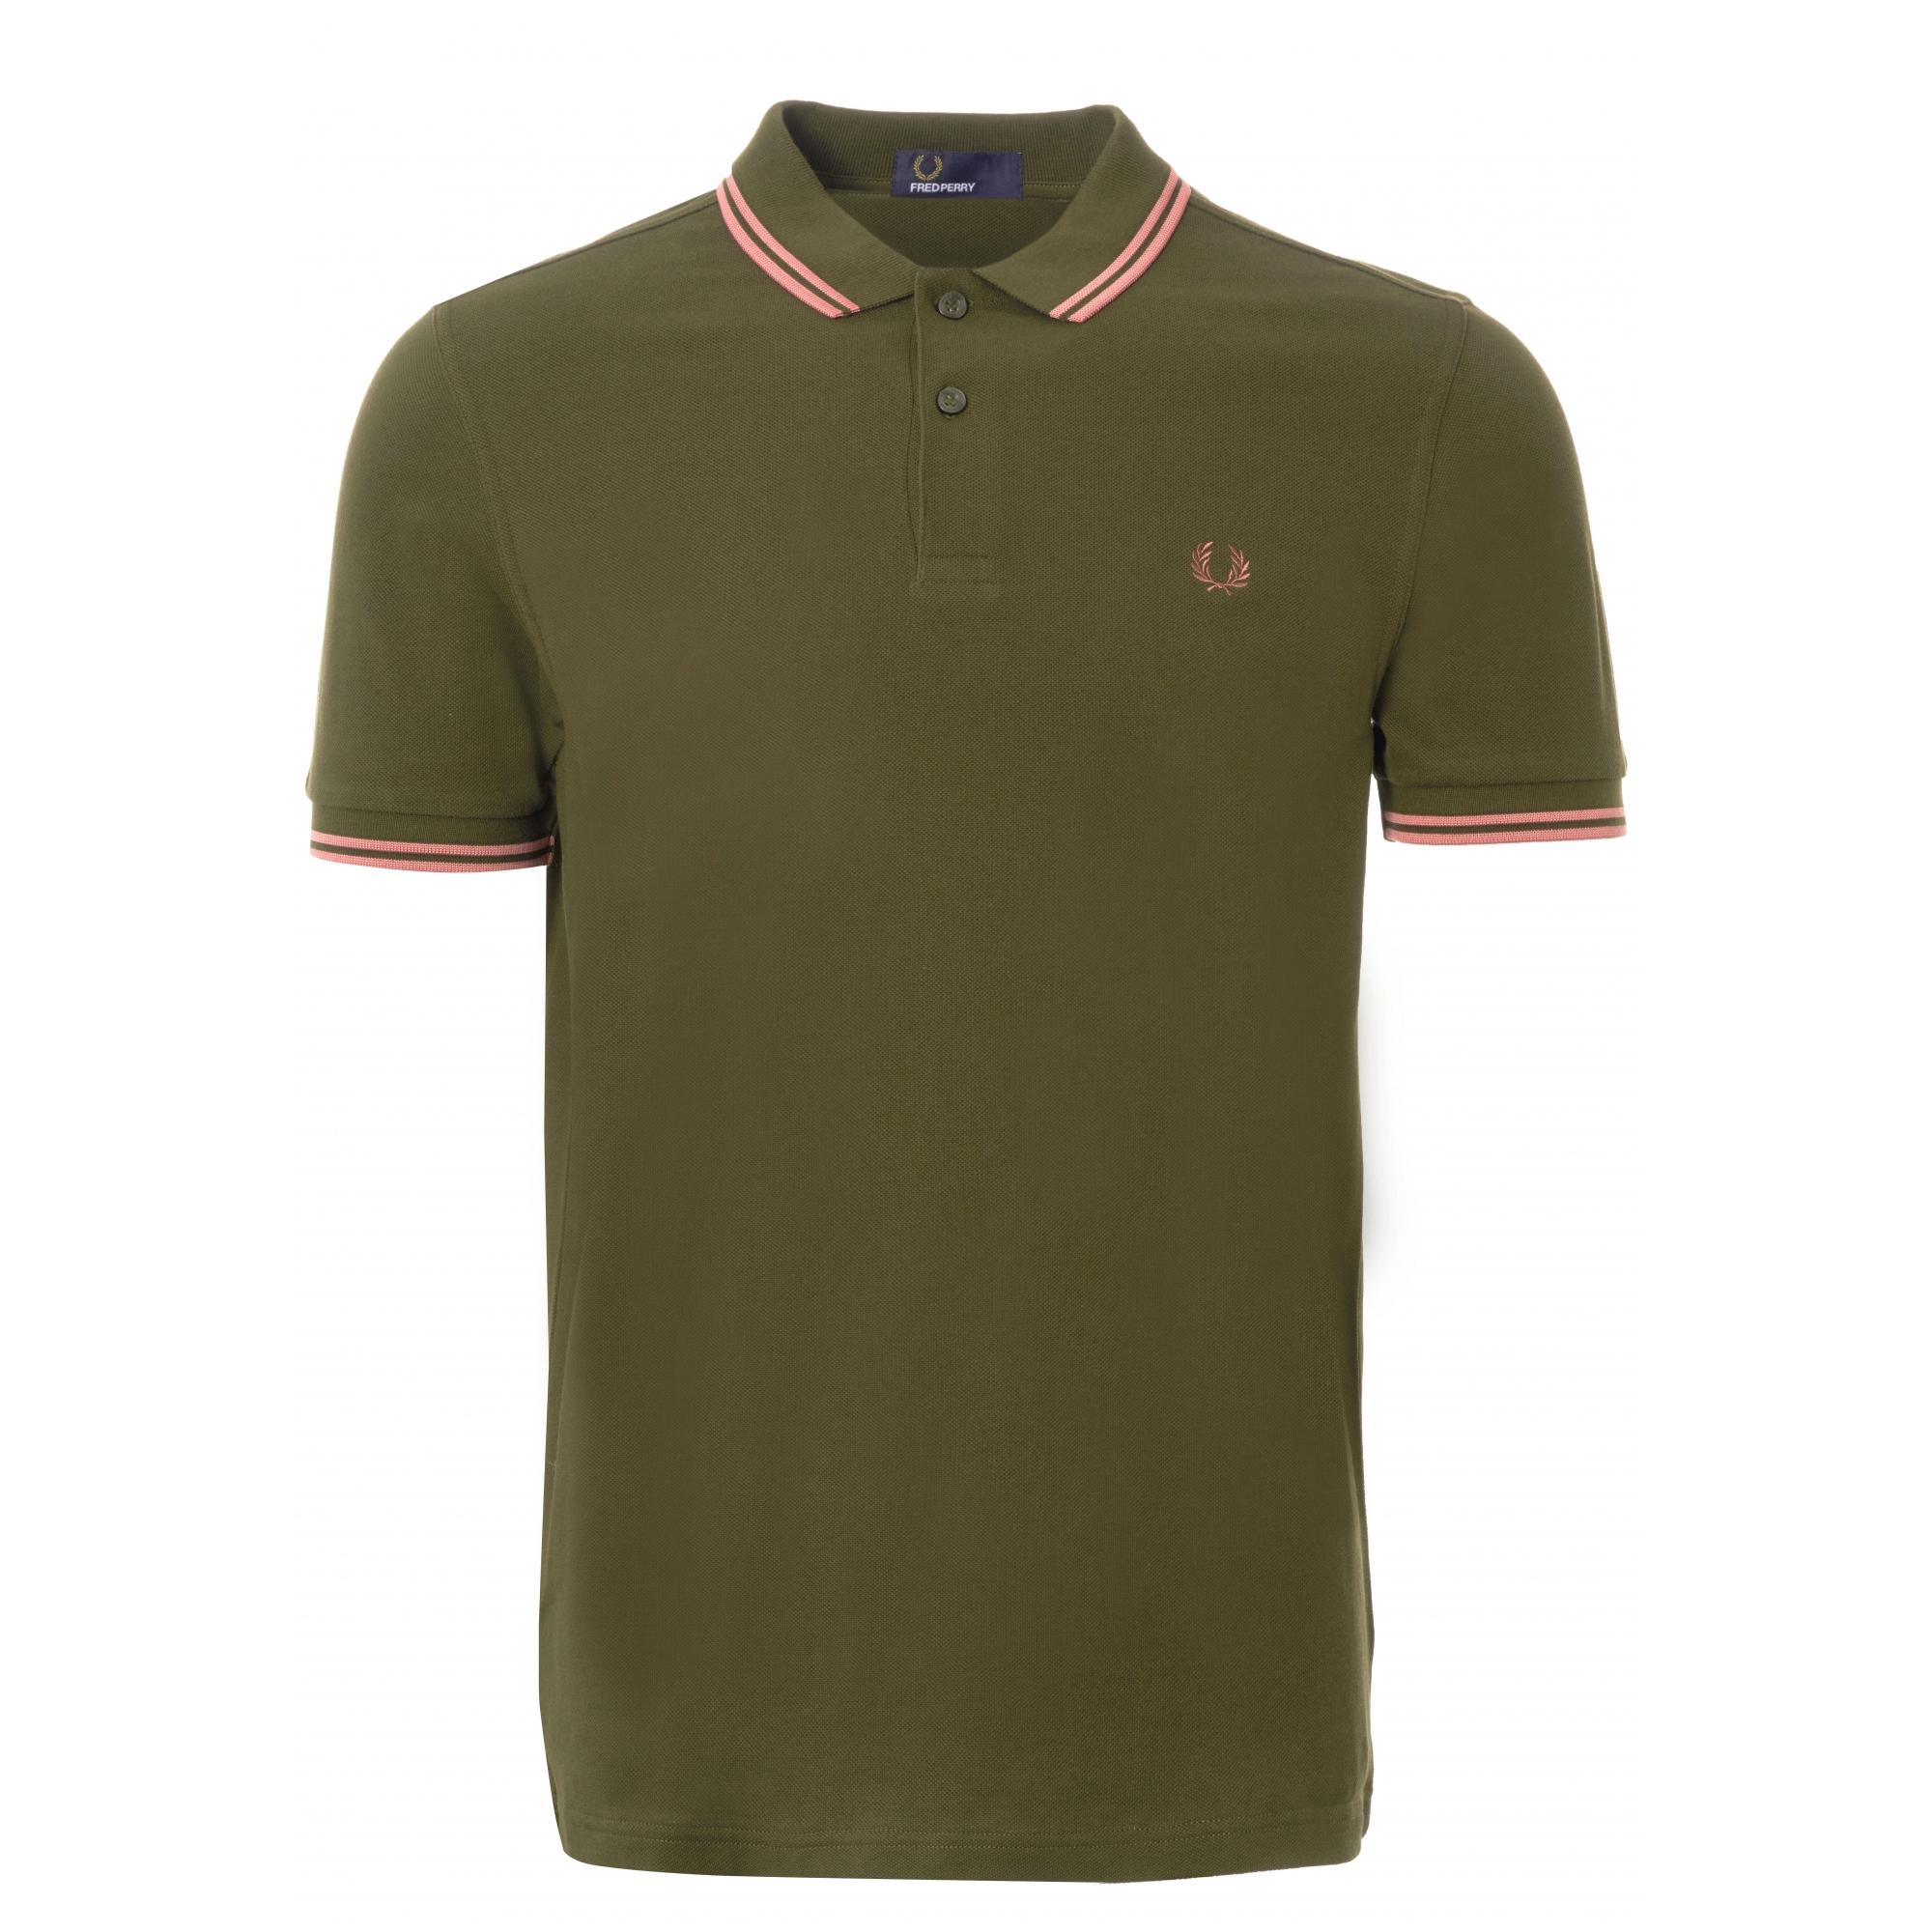 9d8255155 Fred Perry Authentic M3600 Twin Tipped Polo Shirt - Hunting Green in ...